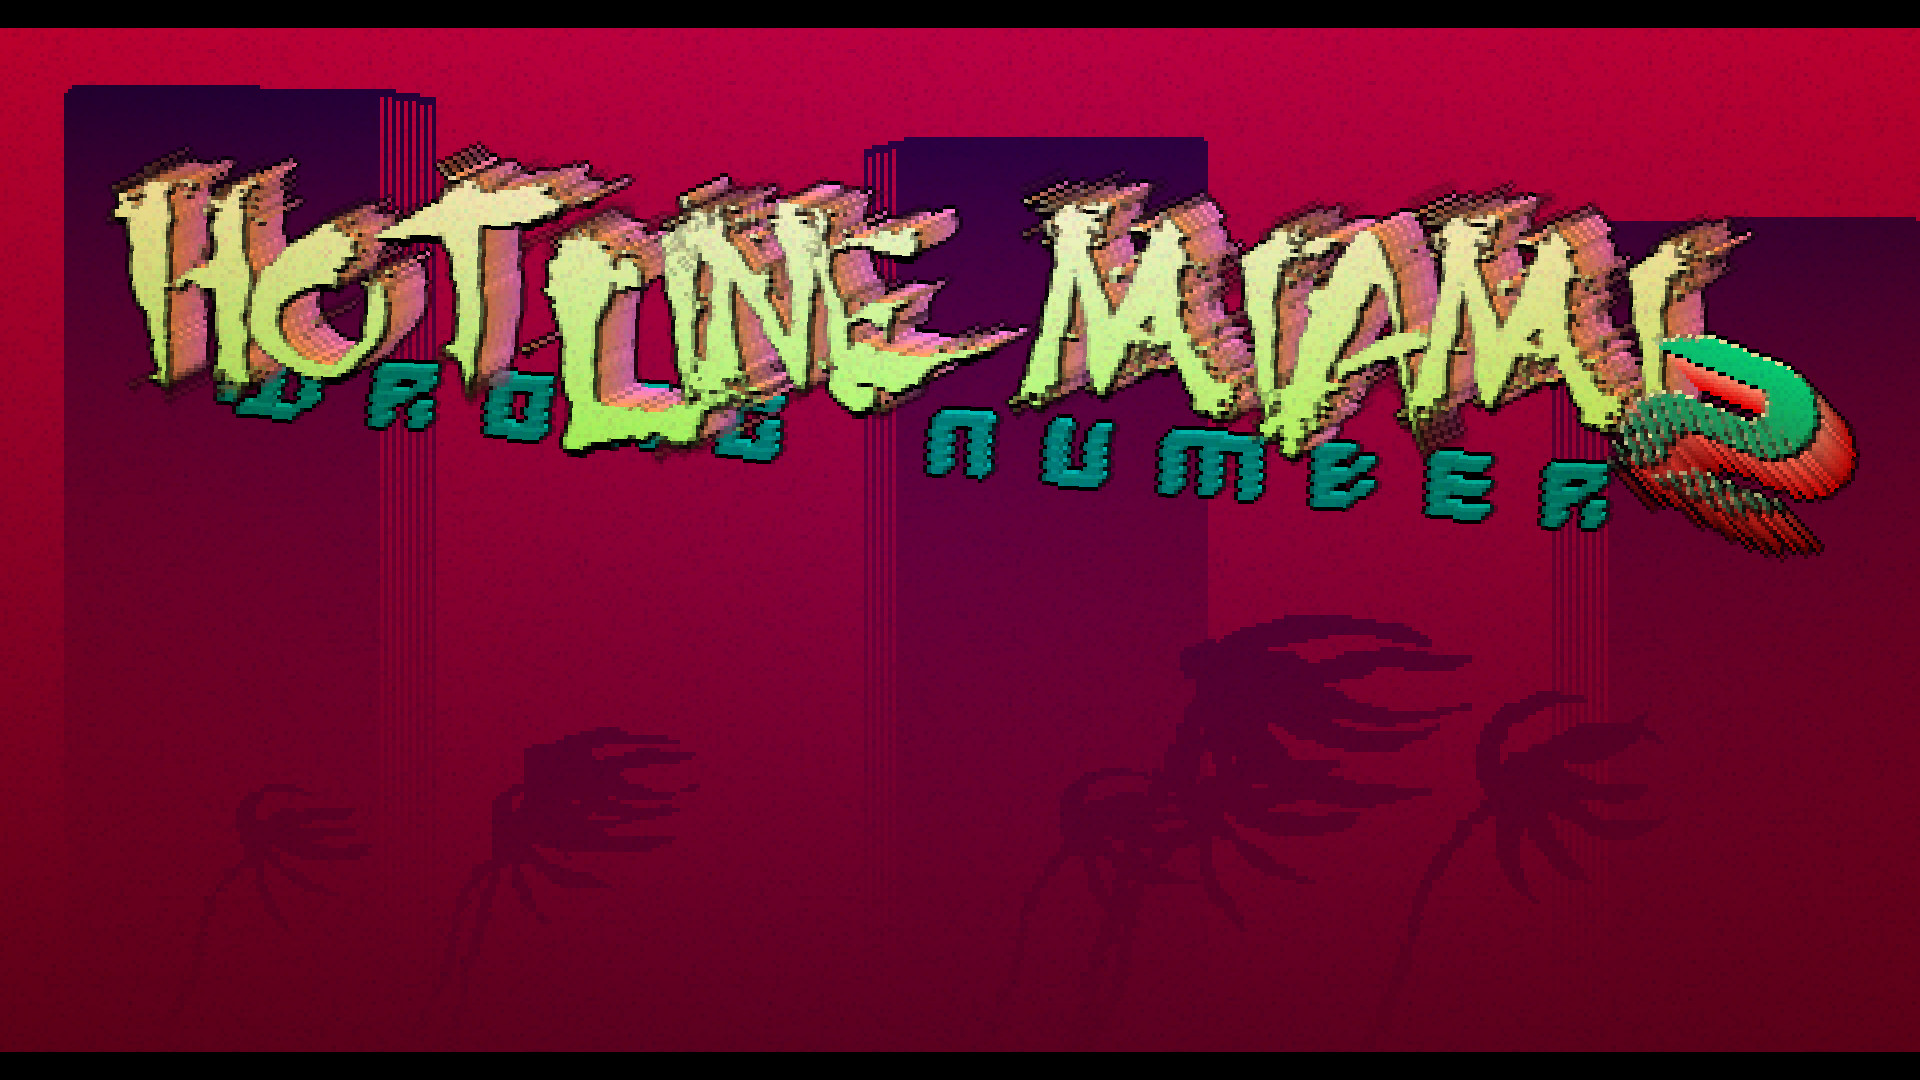 Hotline Miami 2 menu screen without the actual menu, just thought someone  might want to use it as a wallpaper.